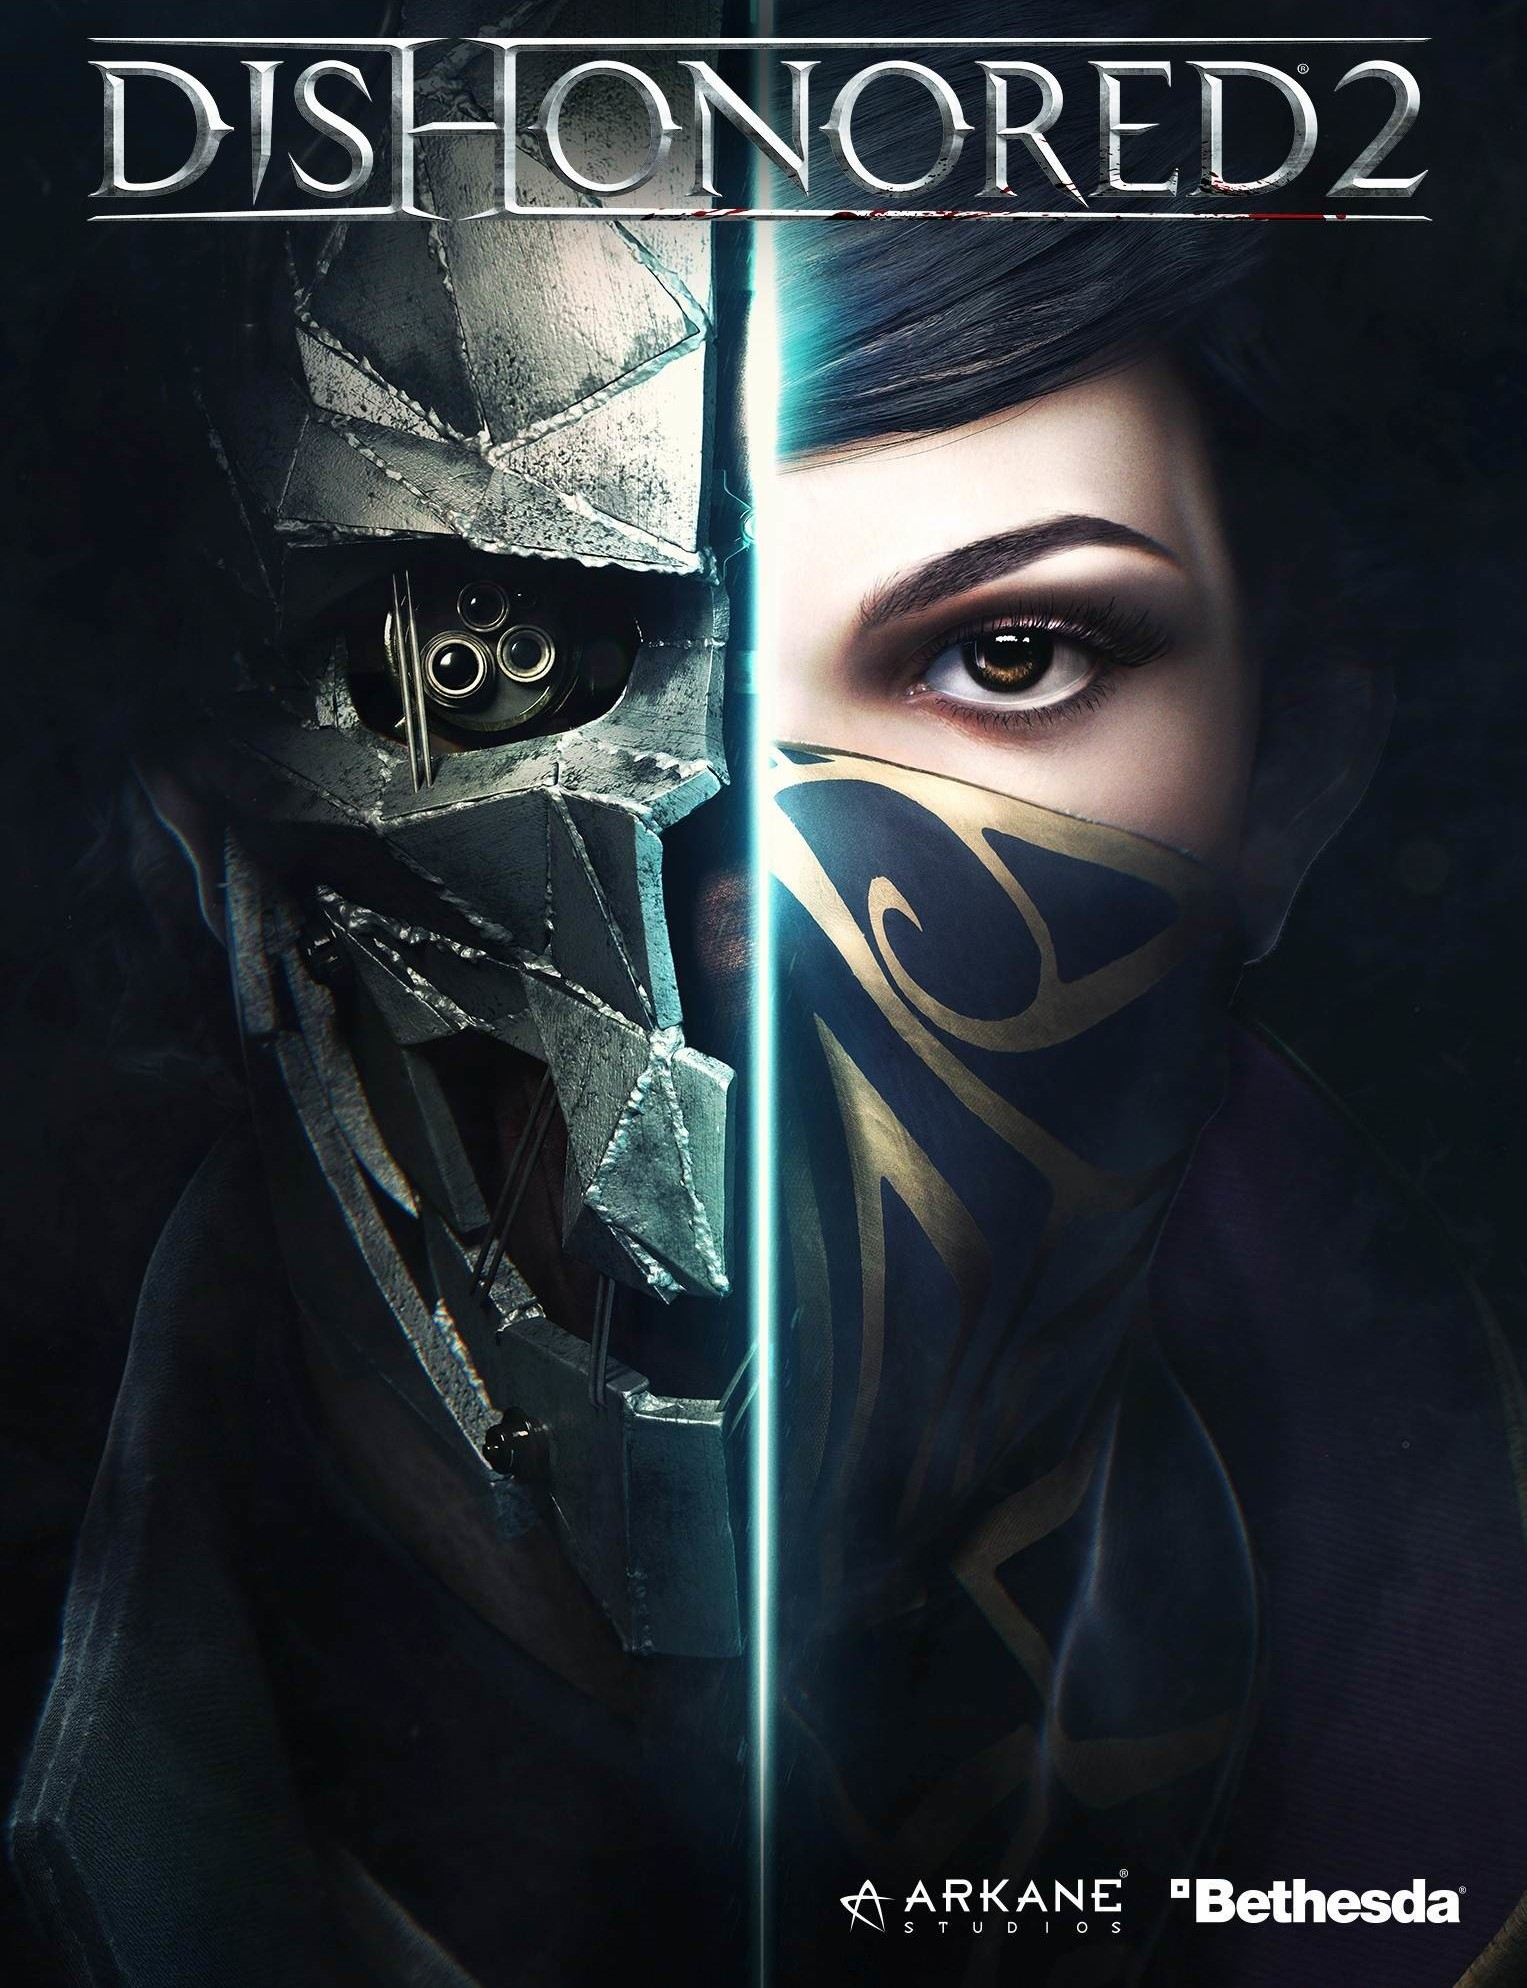 Dishonored 2 STEAM KEY (RU/CIS)